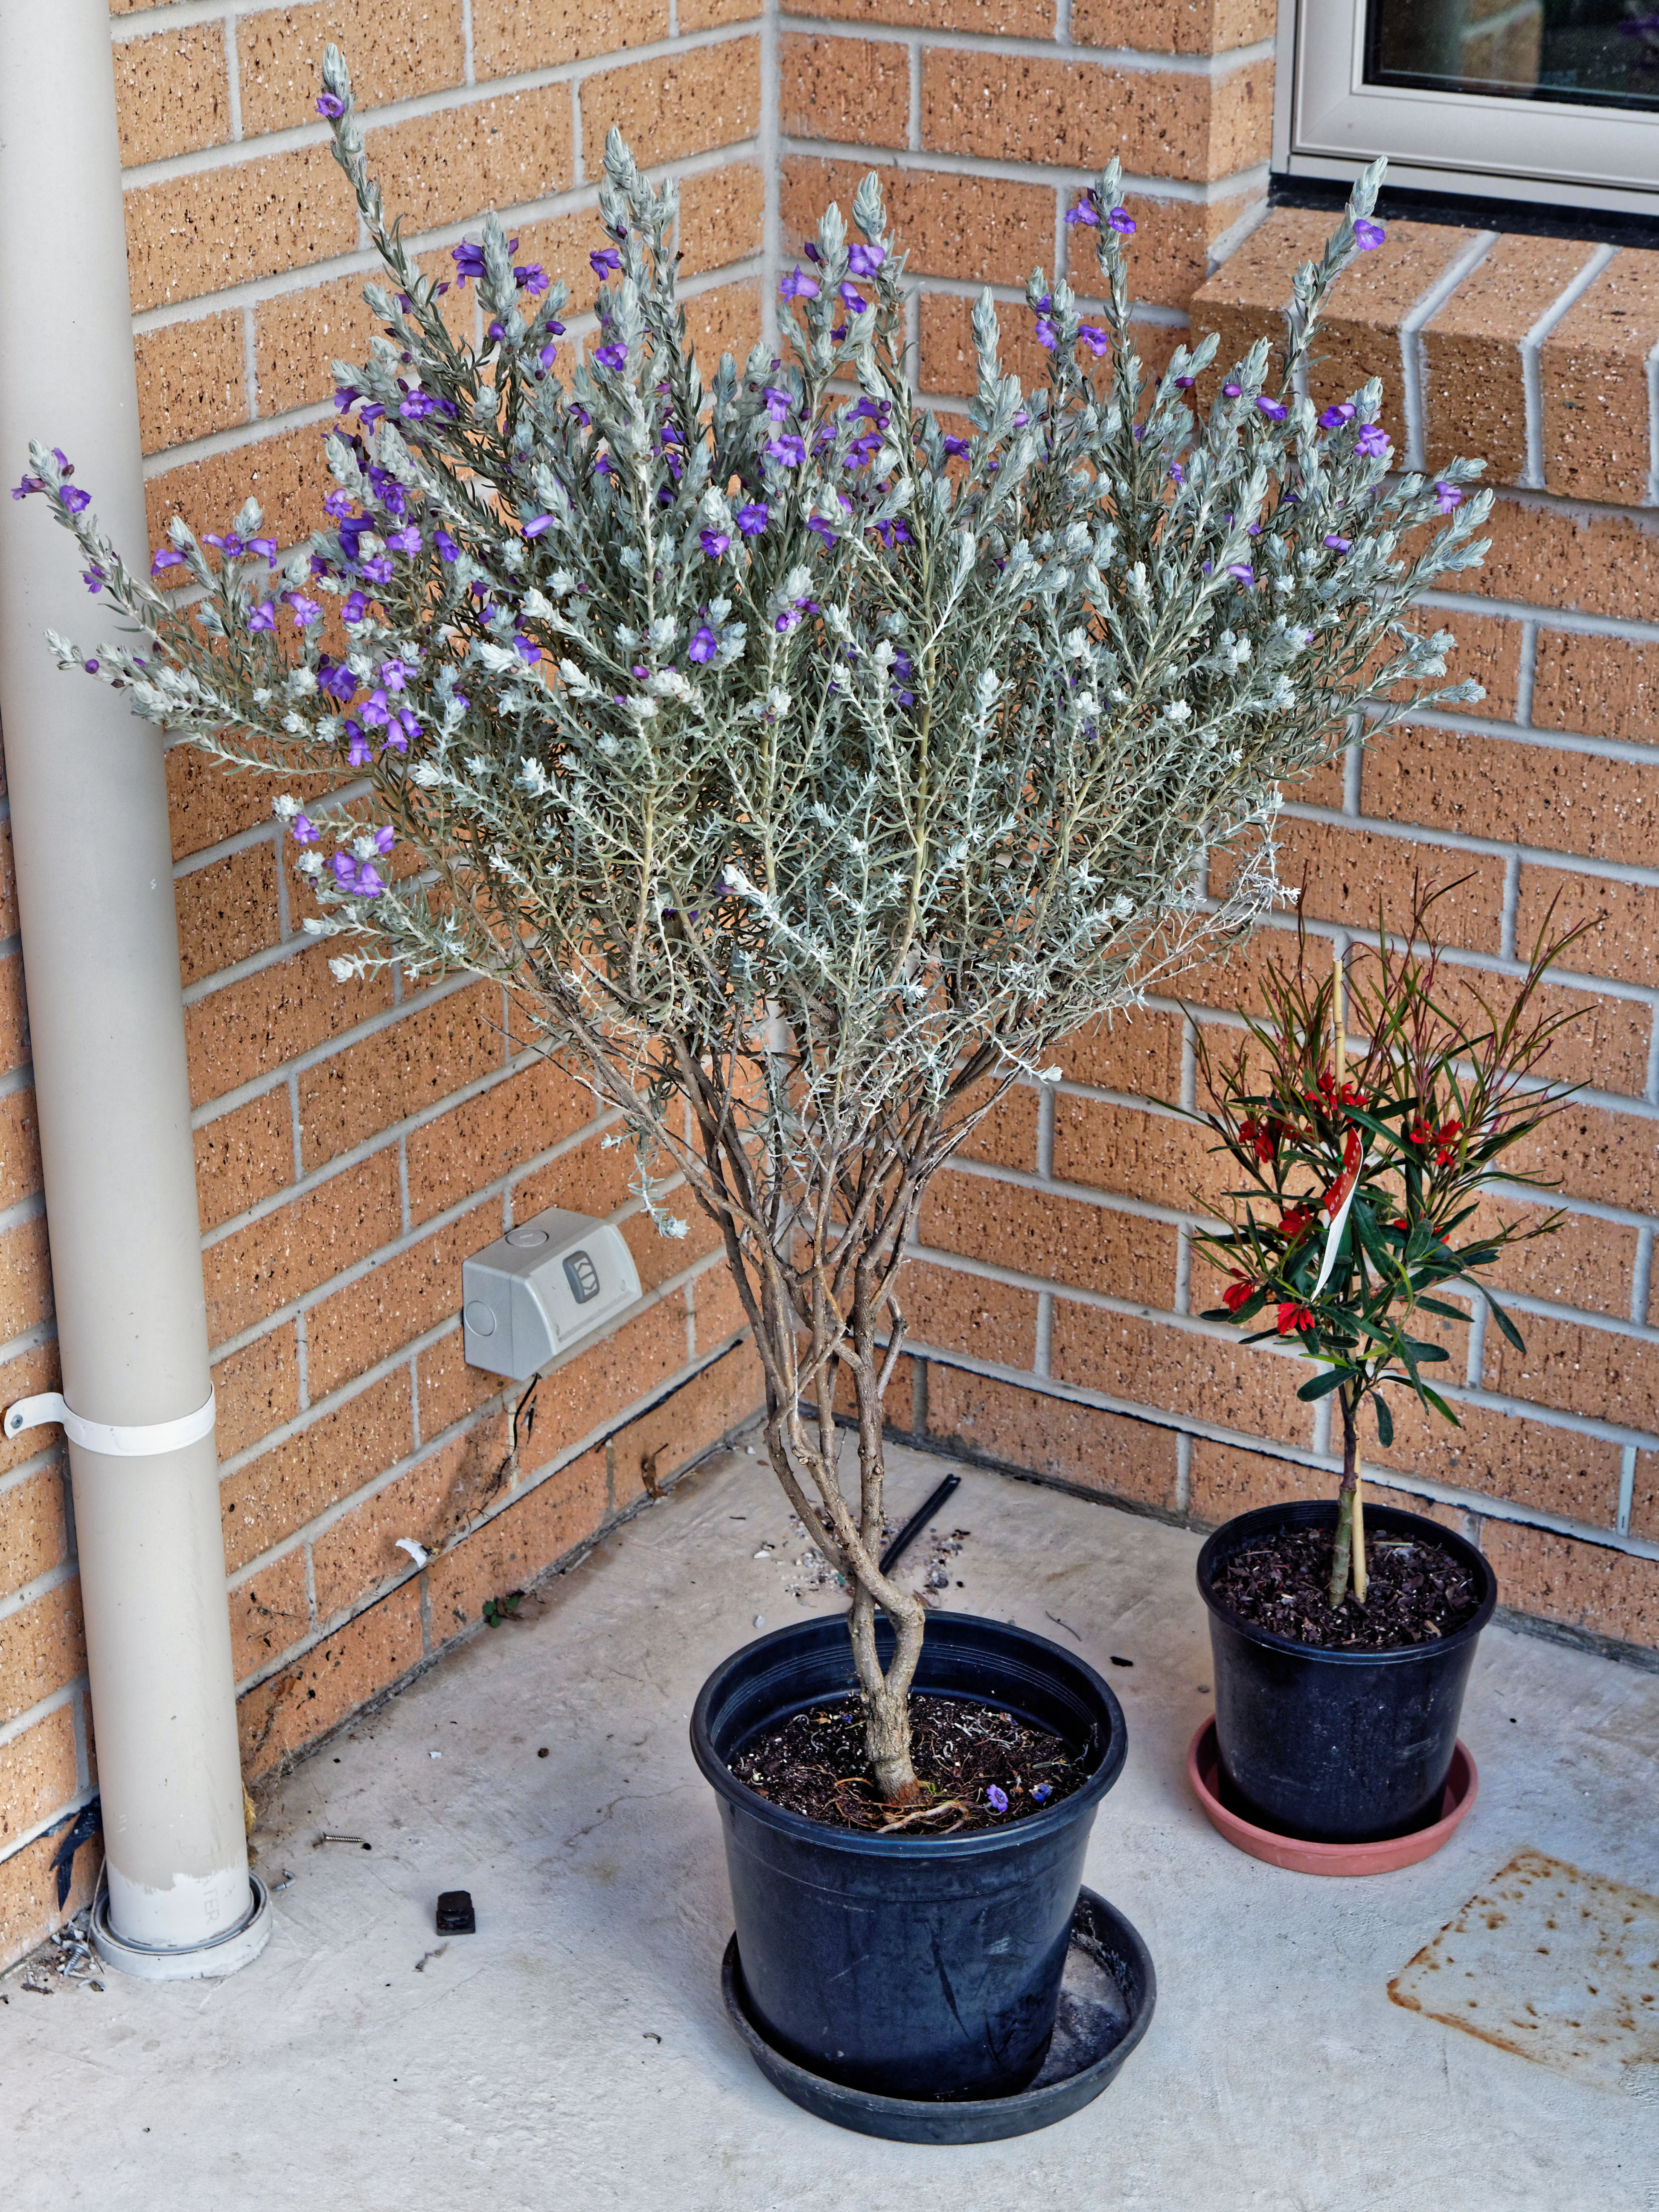 This should be Eremophila-nivea-1.jpeg.  Is it missing?